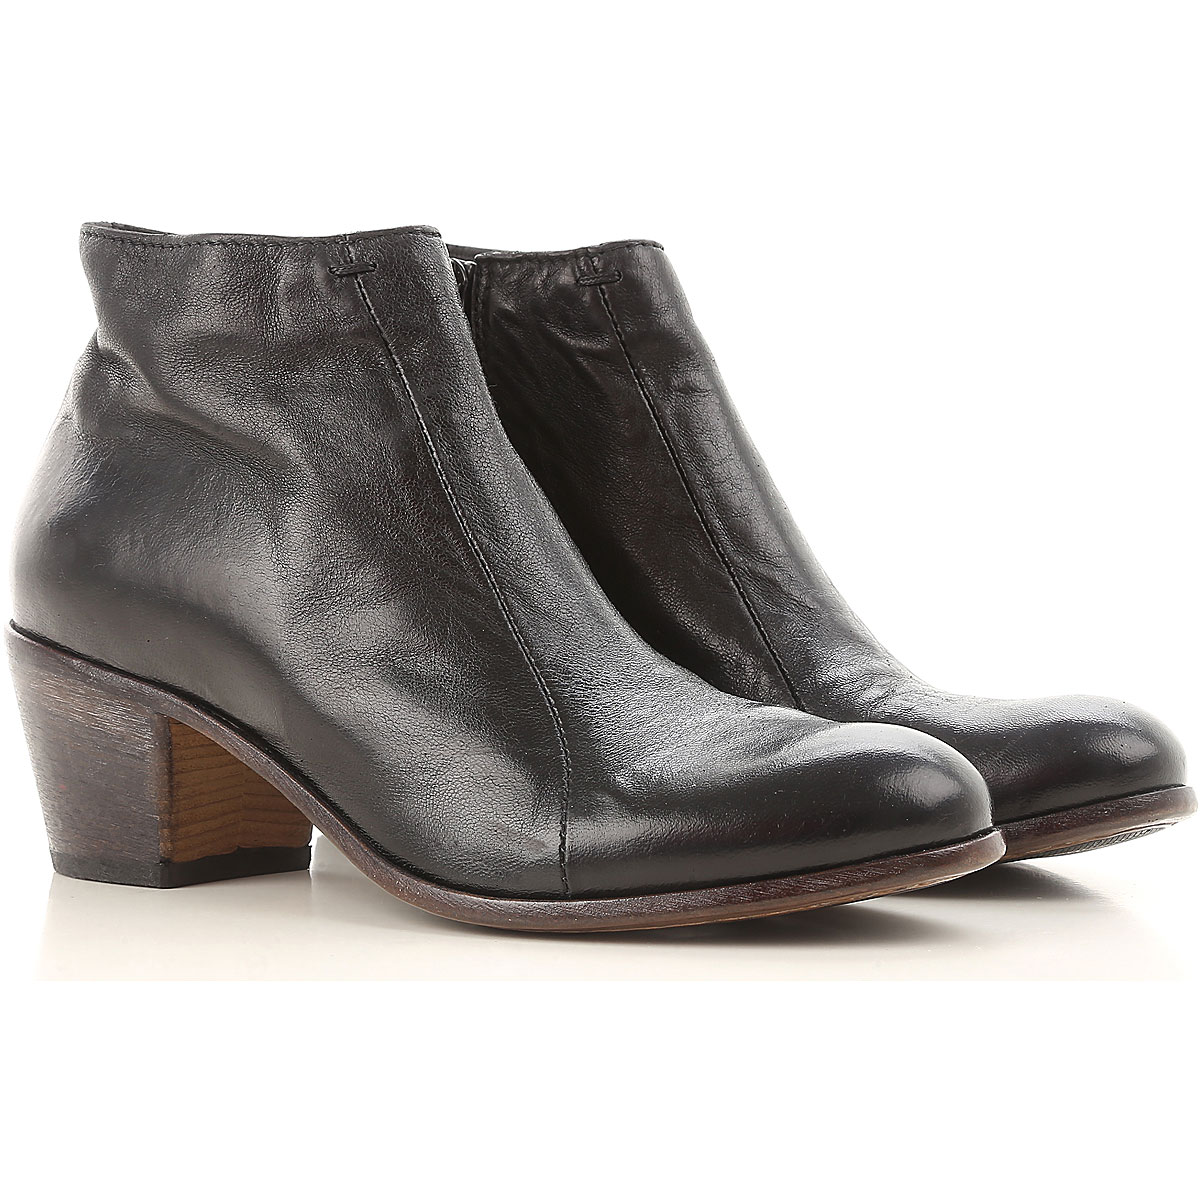 Image of Moma Boots for Women, Booties, Black, Leather, 2017, 10 8